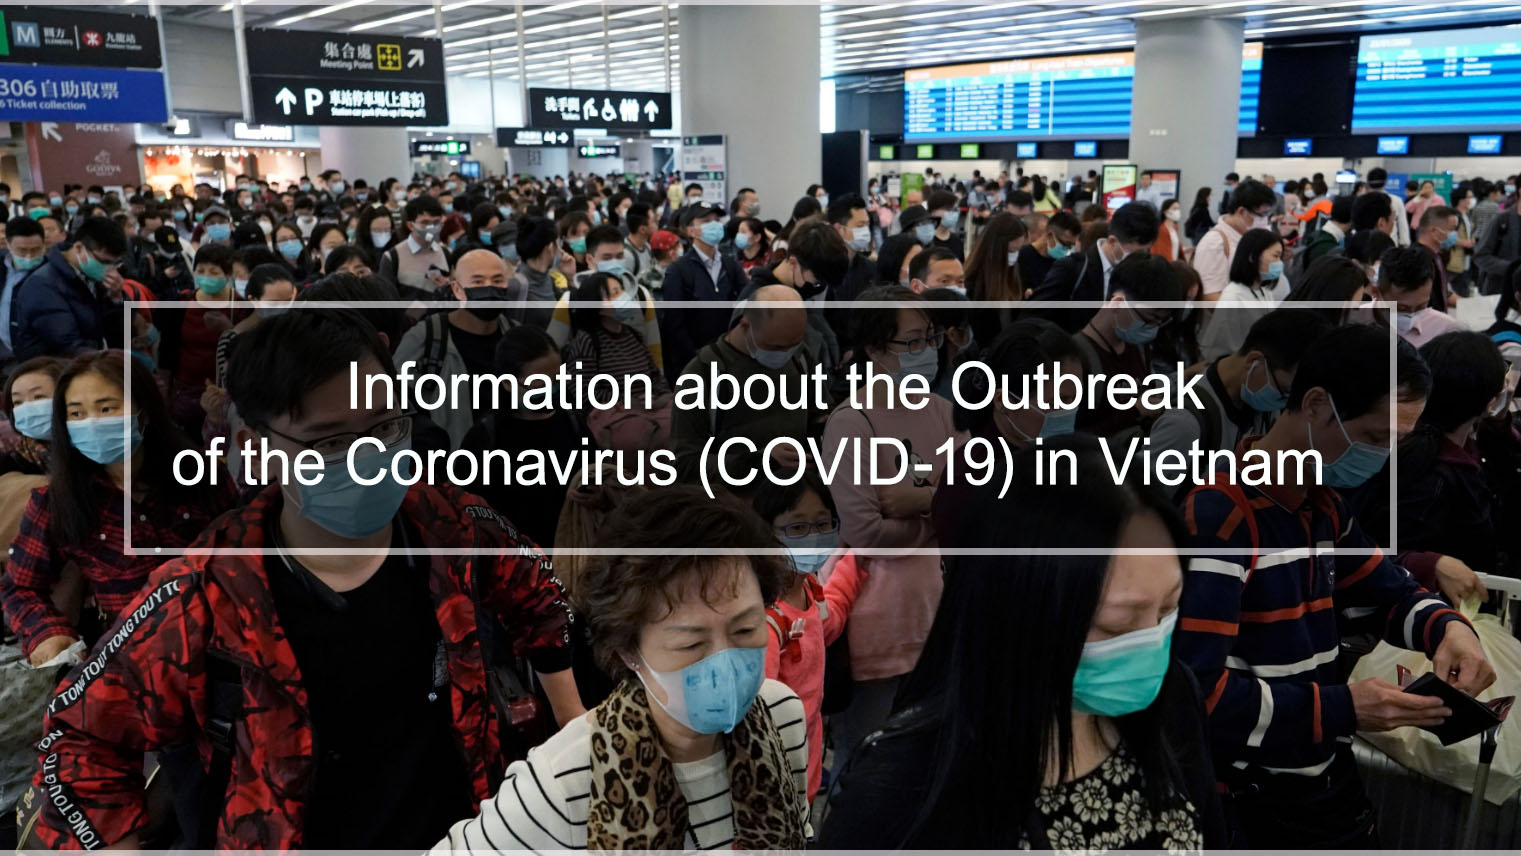 Information about the Outbreak of the Coronavirus (COVID-19) in Vietnam